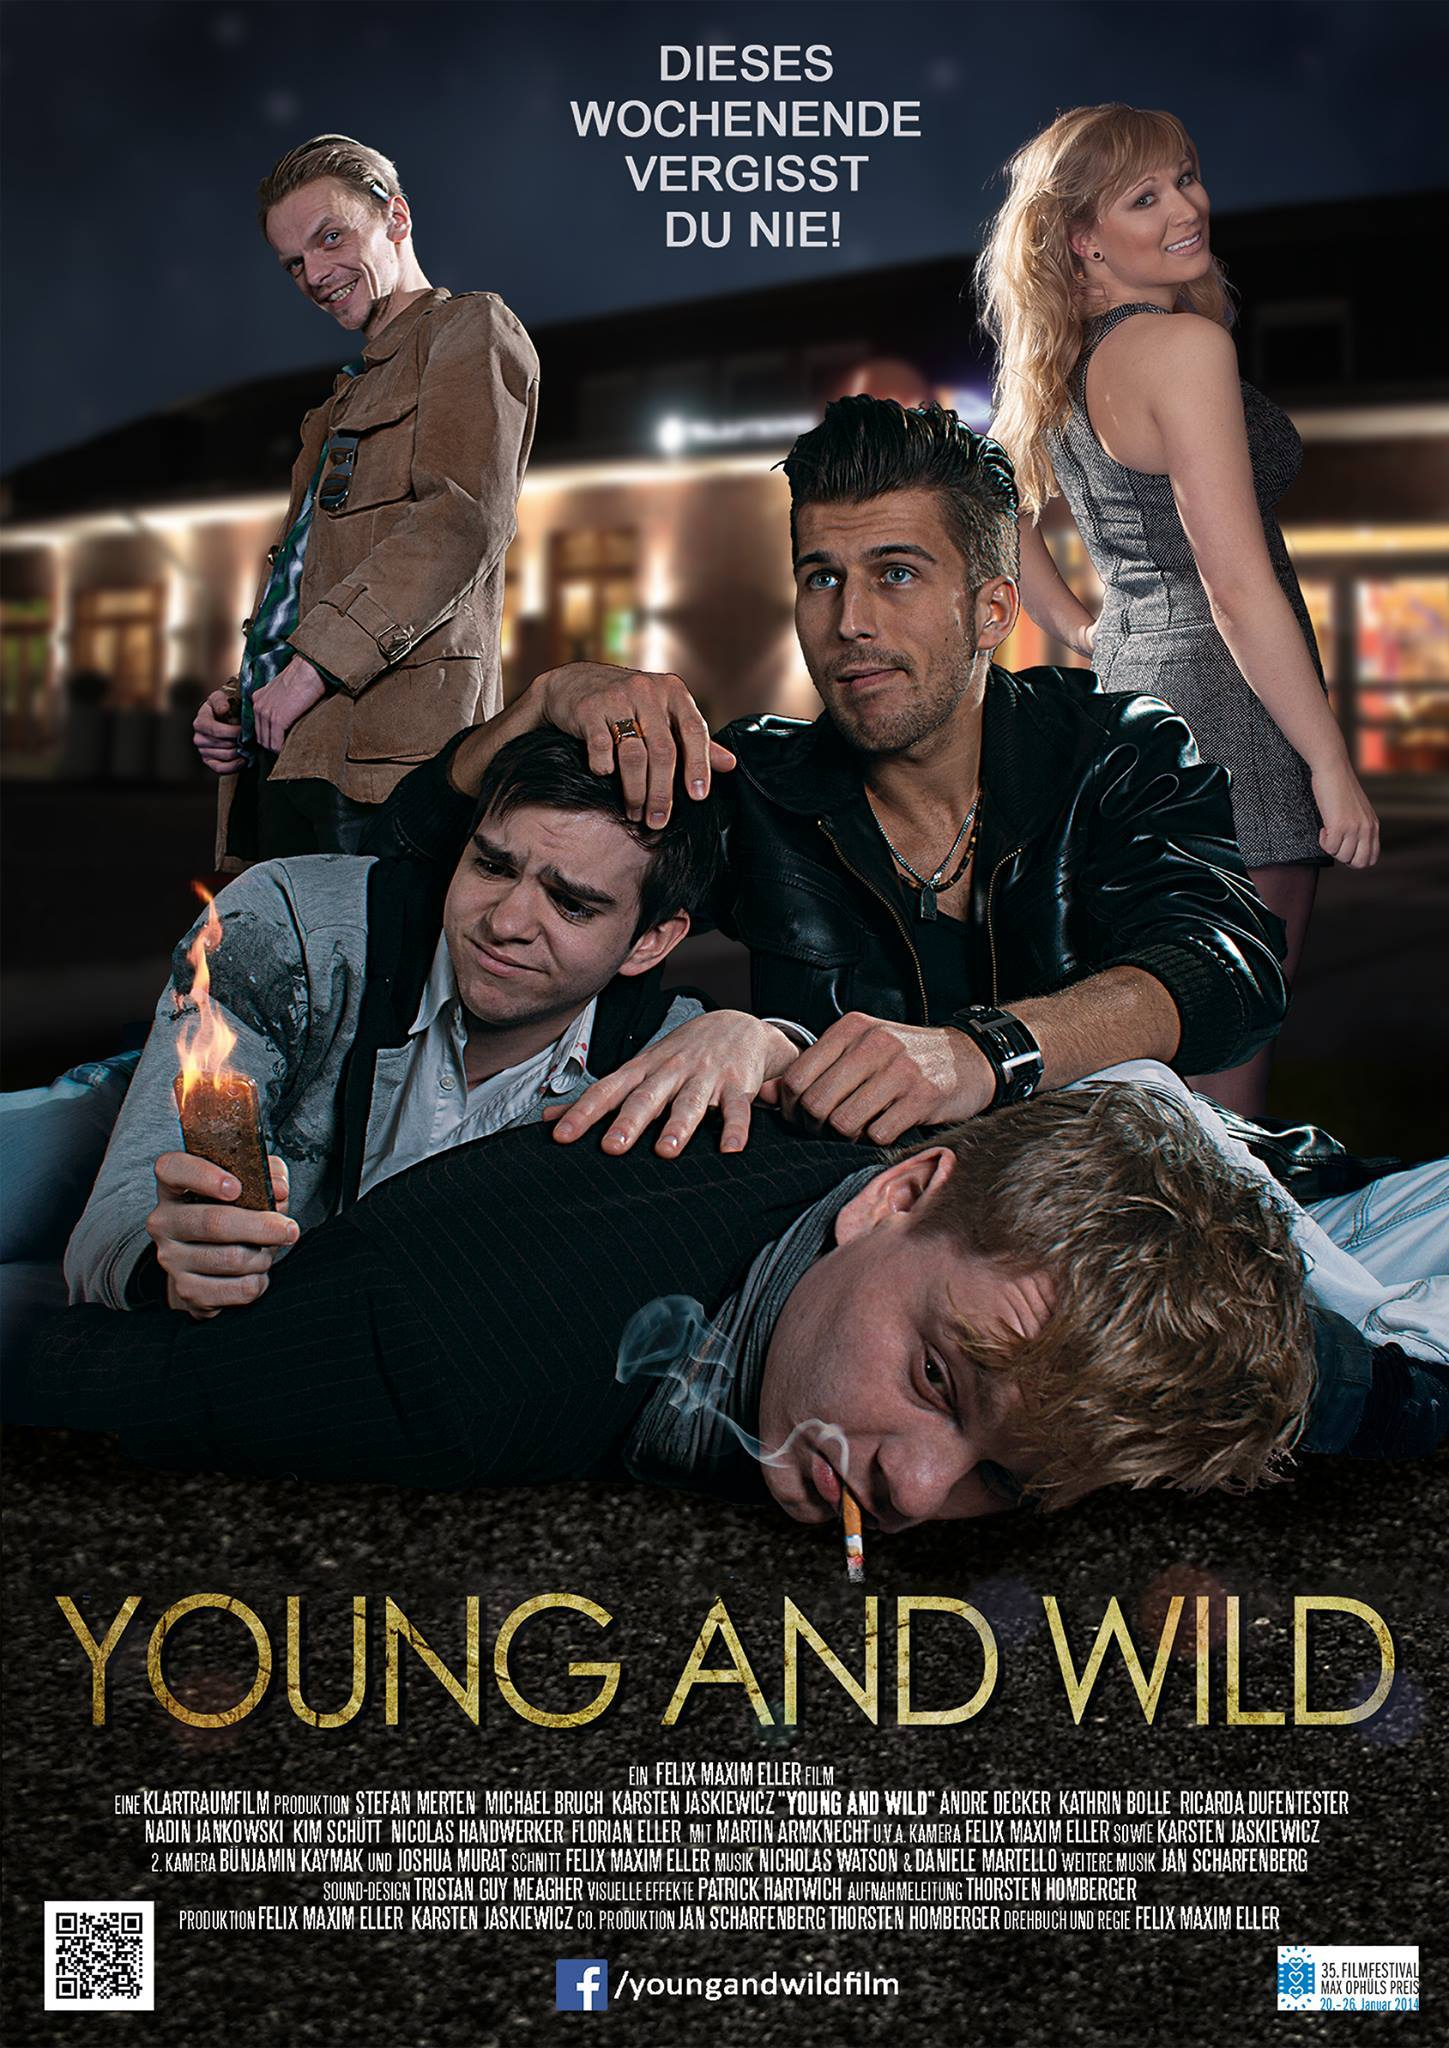 Young and wild prhoto